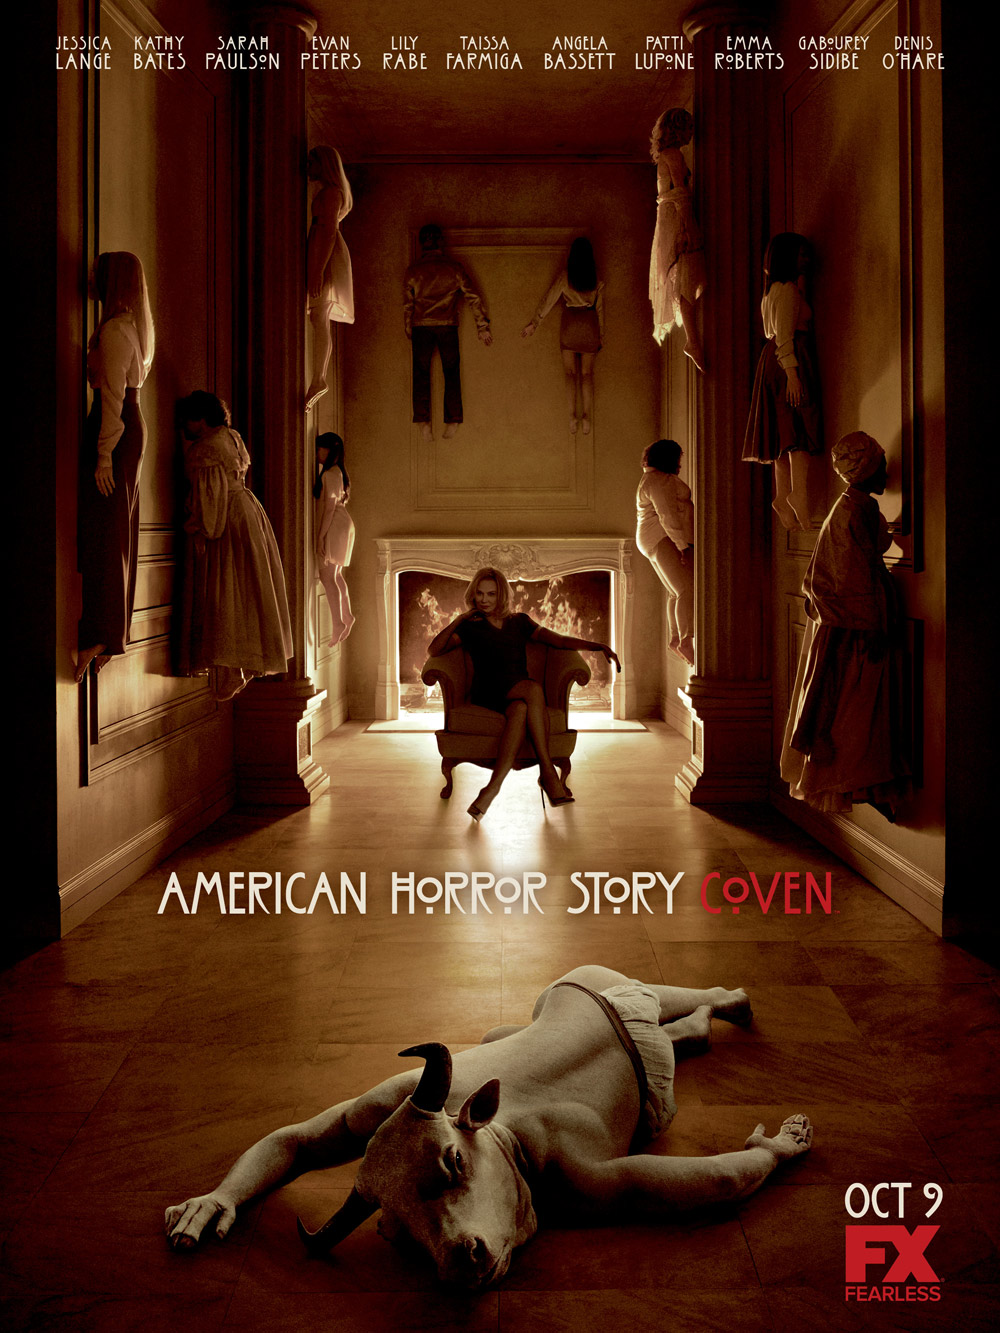 american-horror-story-coven-poster2